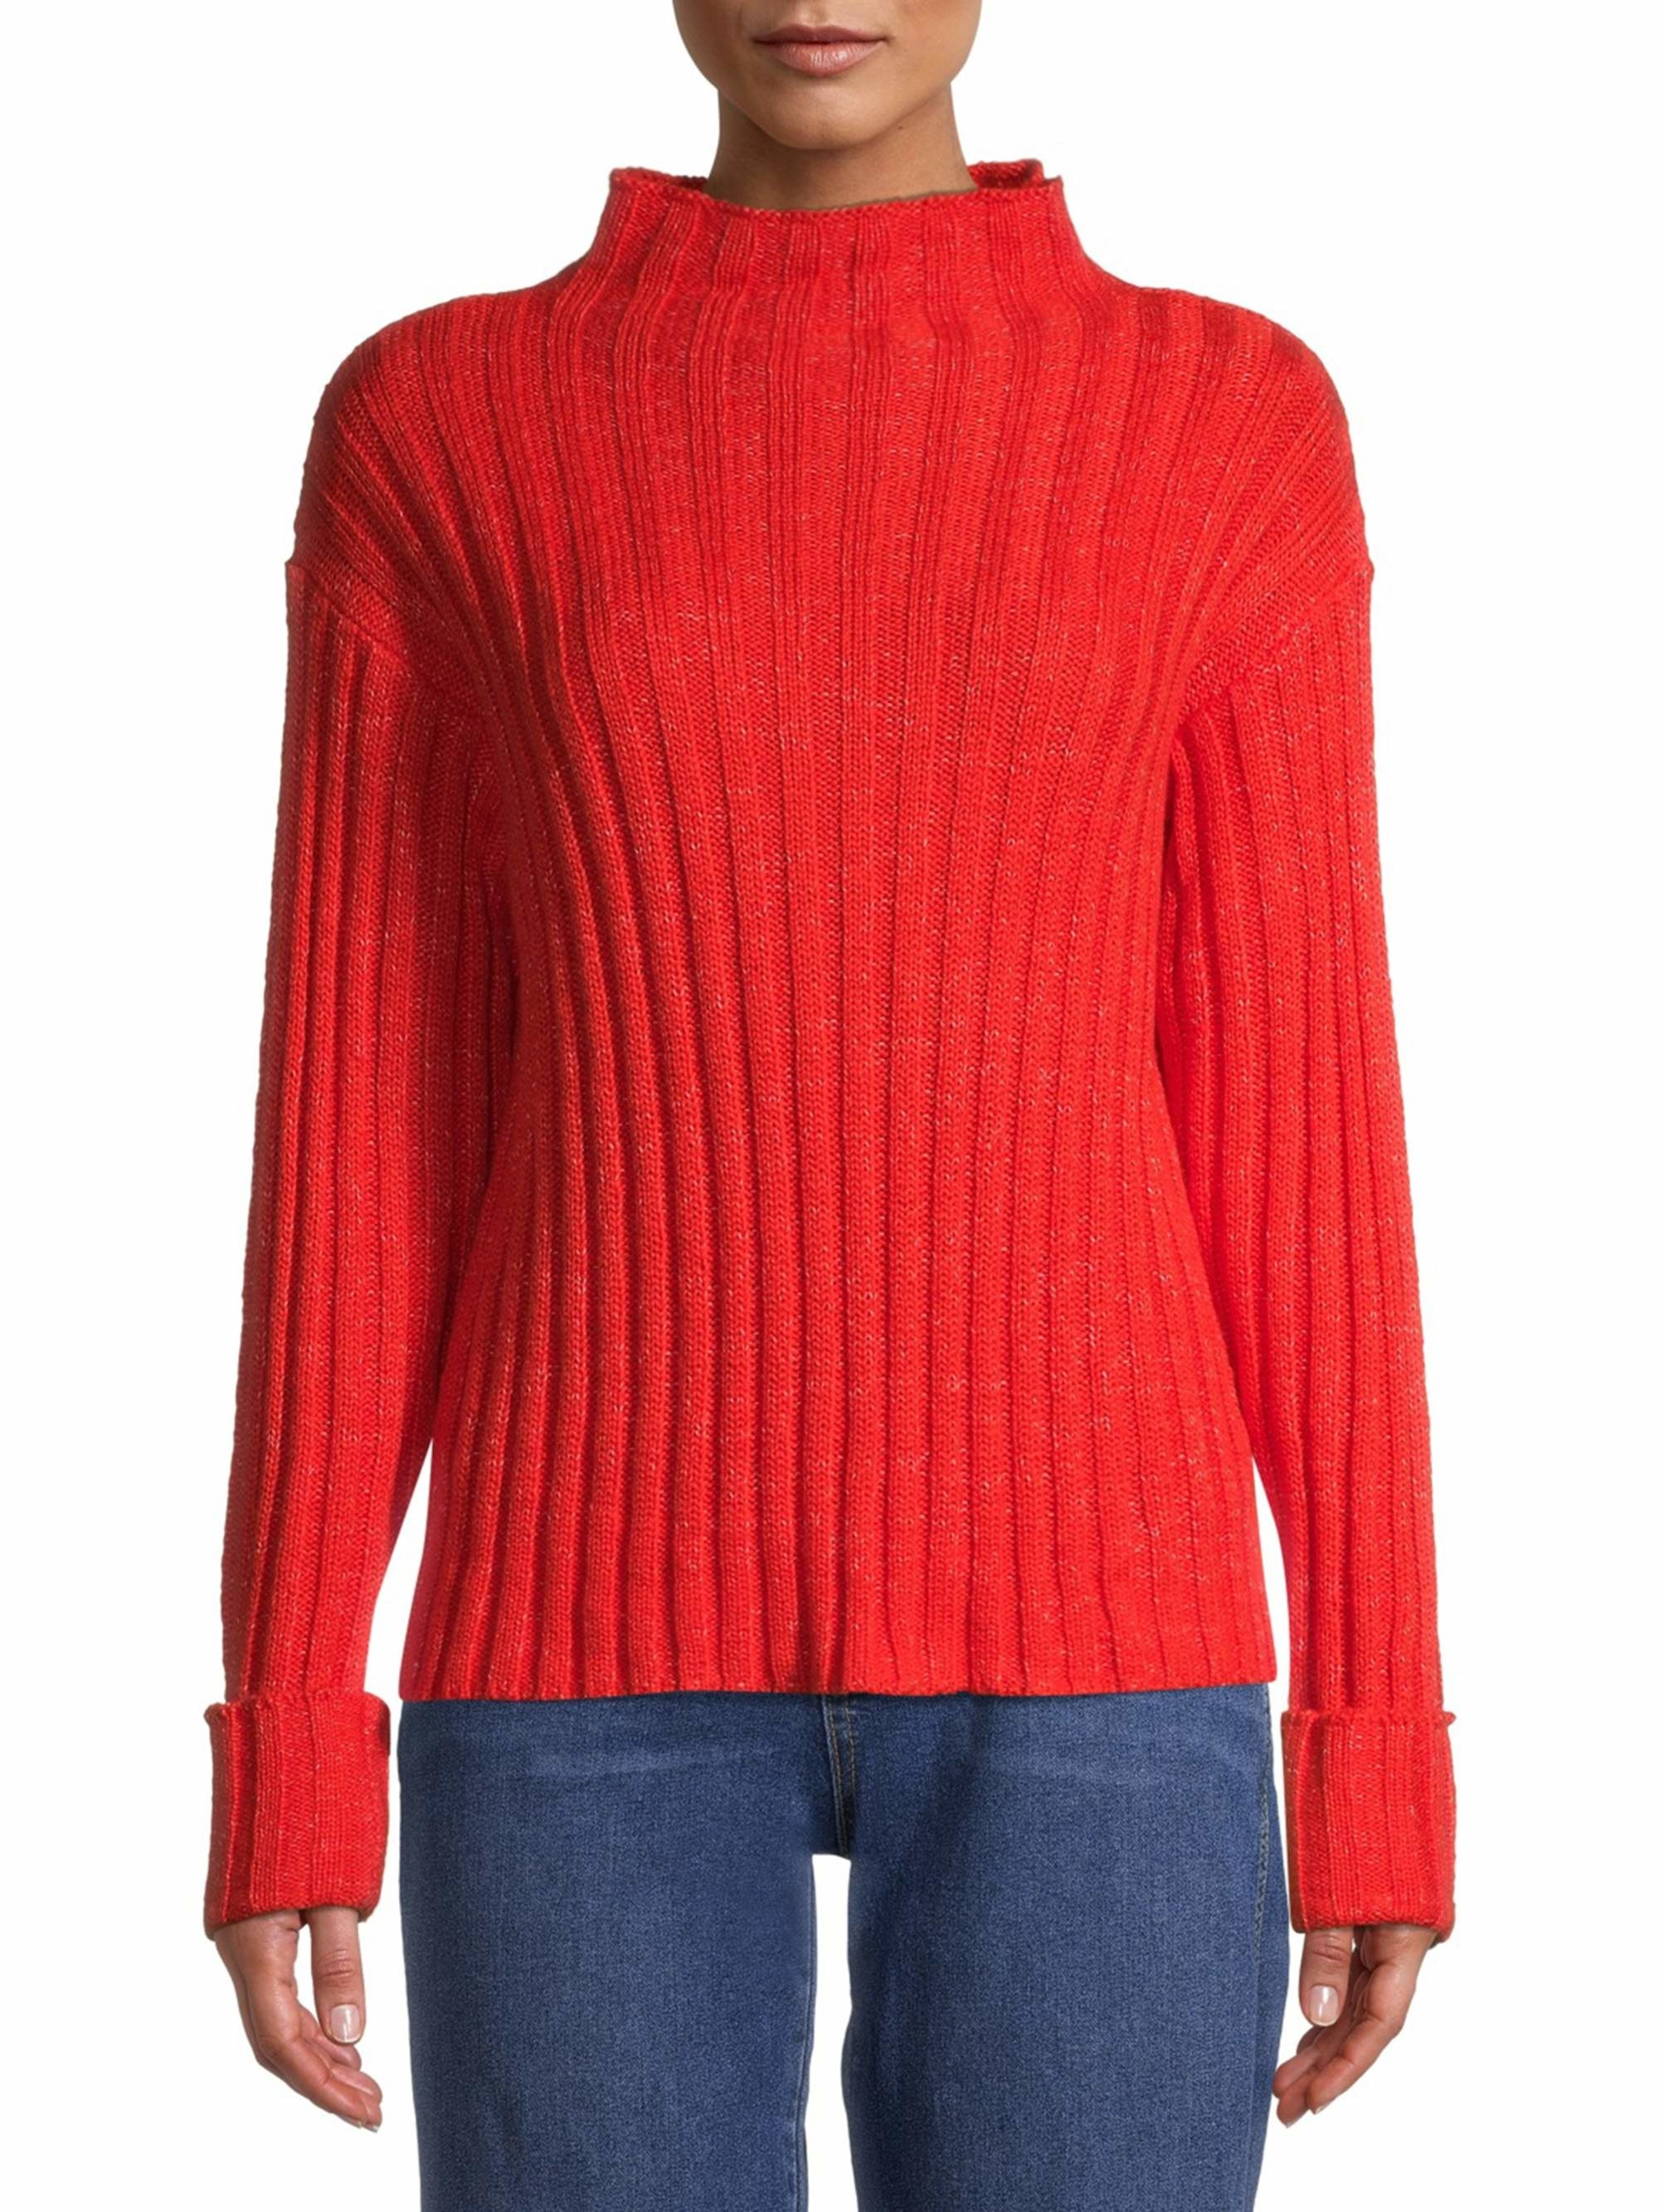 The mock-neck sweater